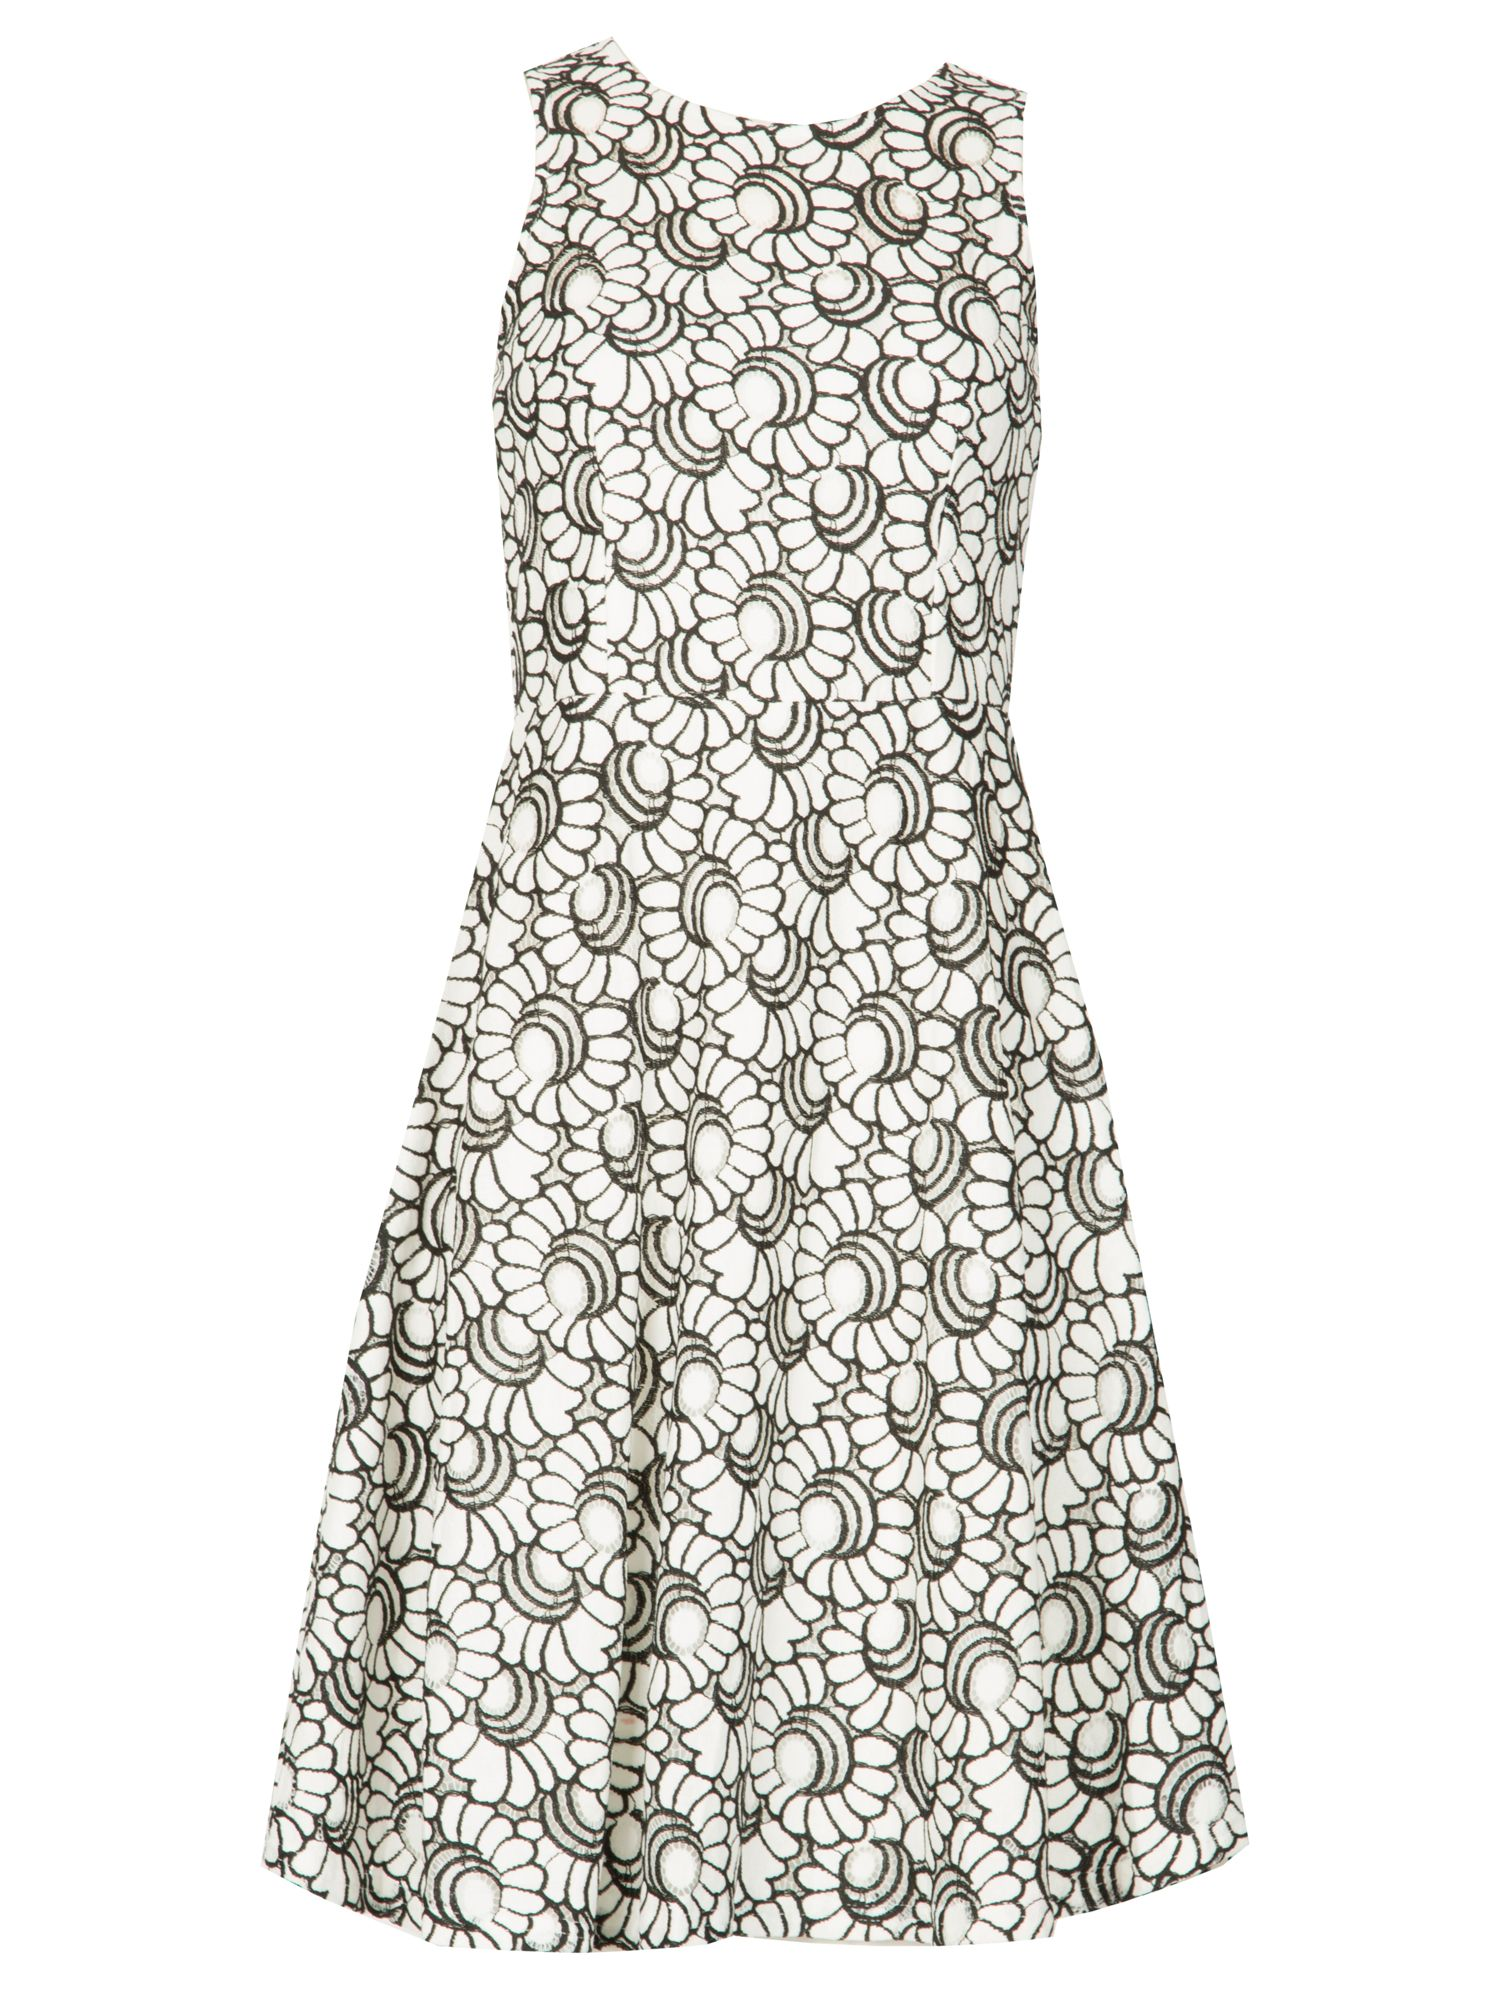 Izabel London Embroidered Floral Lace Dress, White